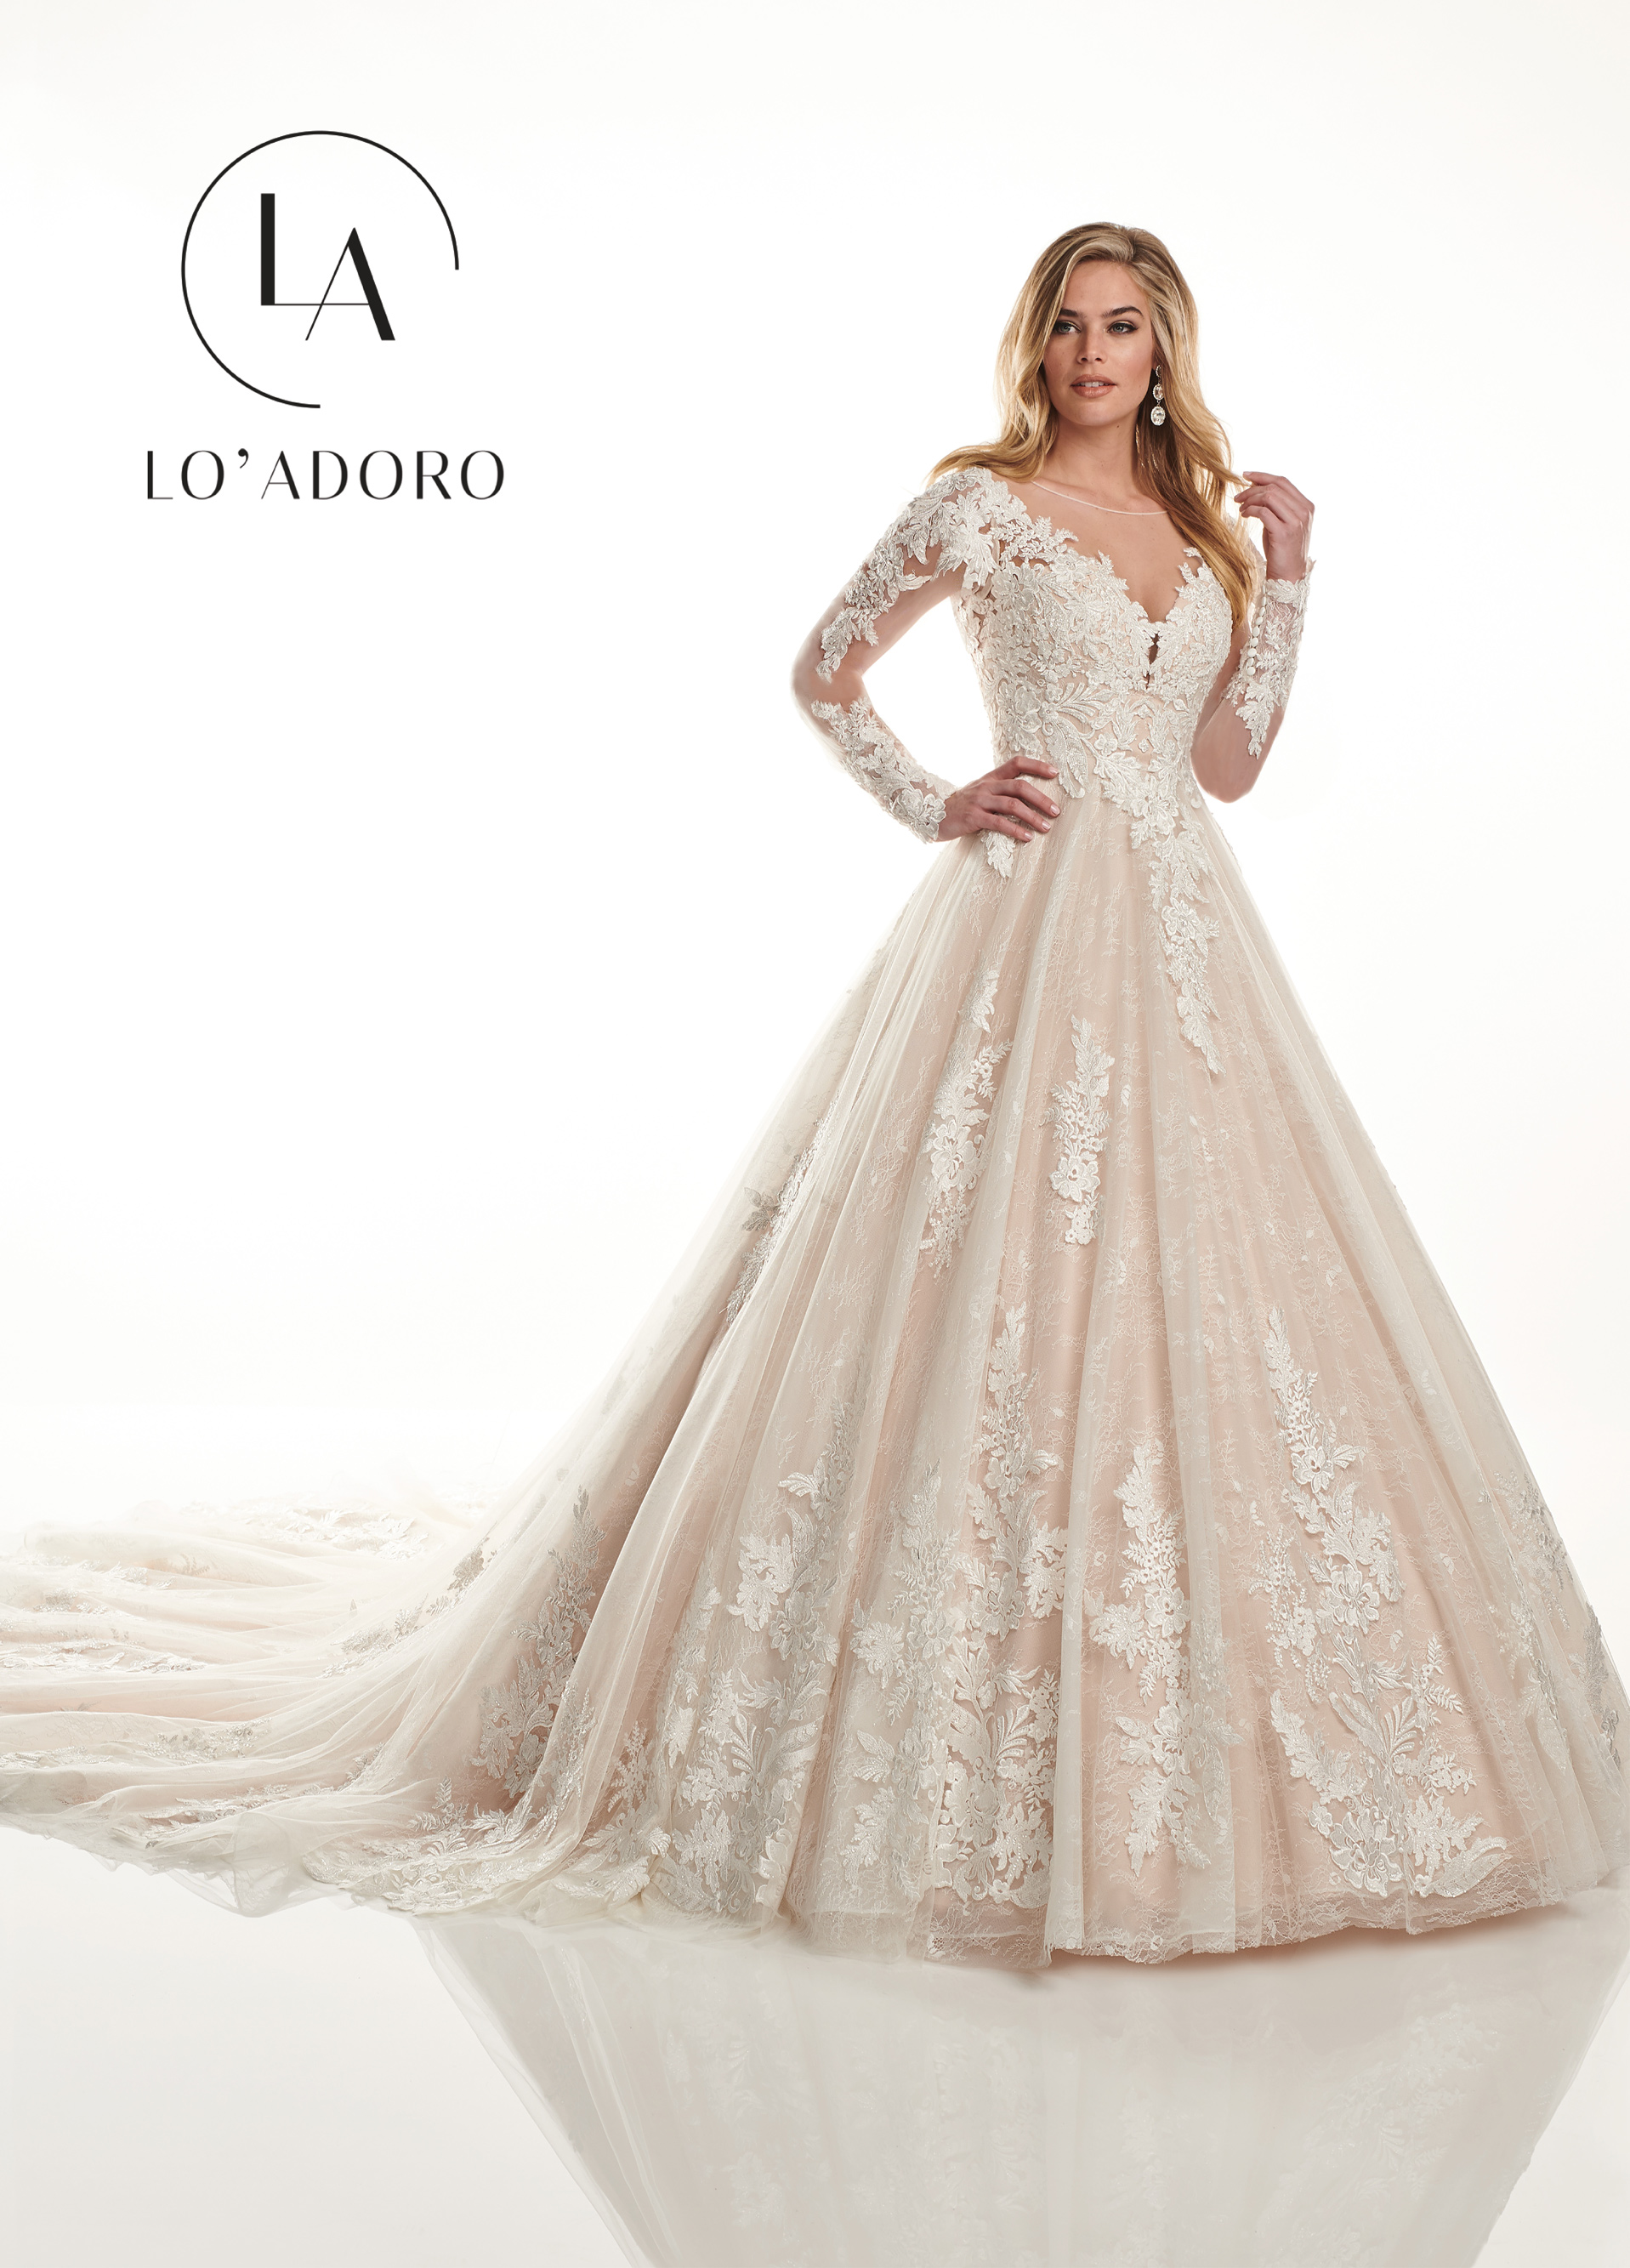 Sheer Ball Gowns Lo' Adoro Bridal in Nude Color